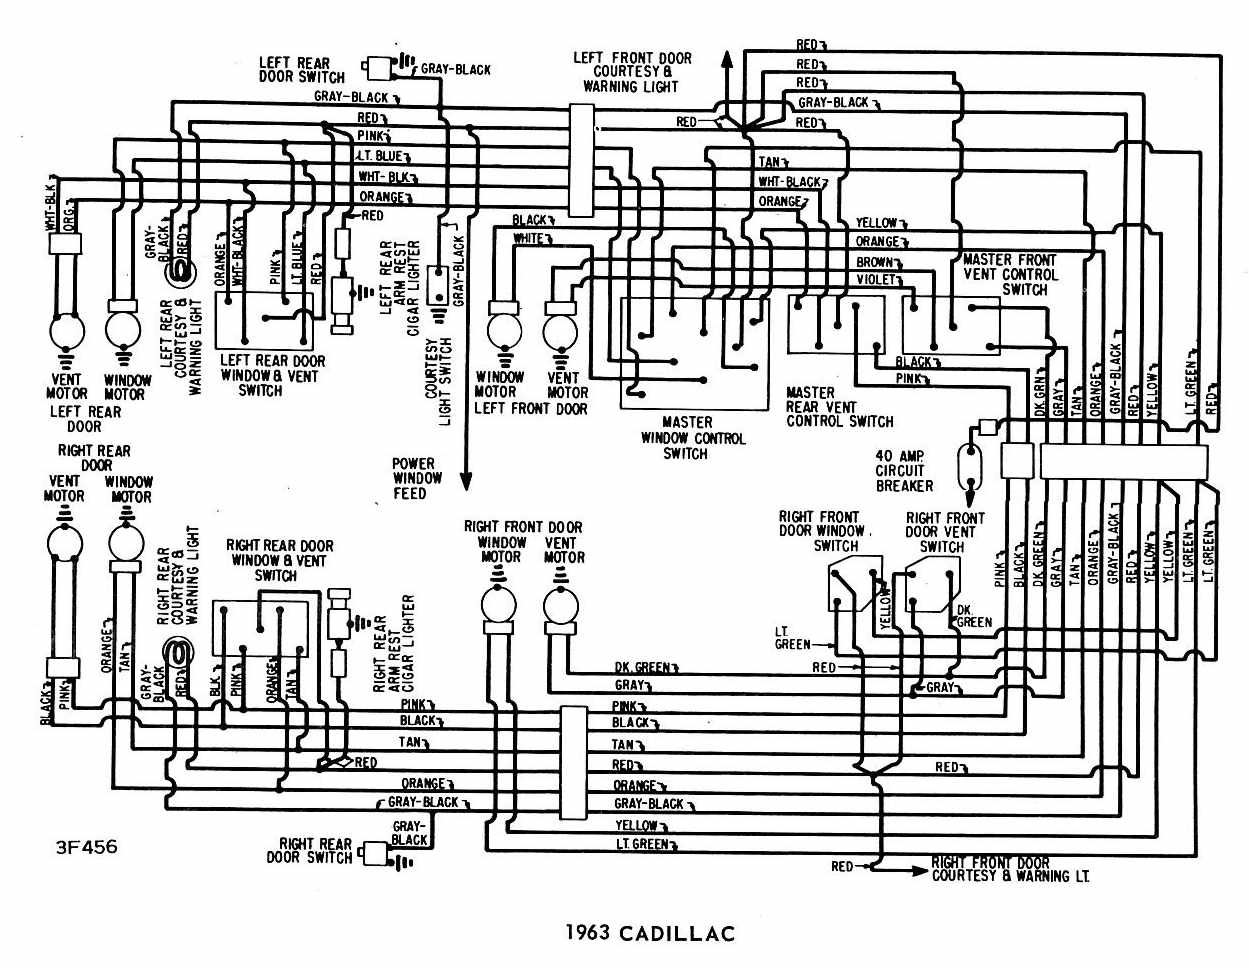 Cadillac+1963+Windows+Wiring+Diagram cadillac 1963 windows wiring diagram all about wiring diagrams 1953 chevy bel air wiring diagram at readyjetset.co